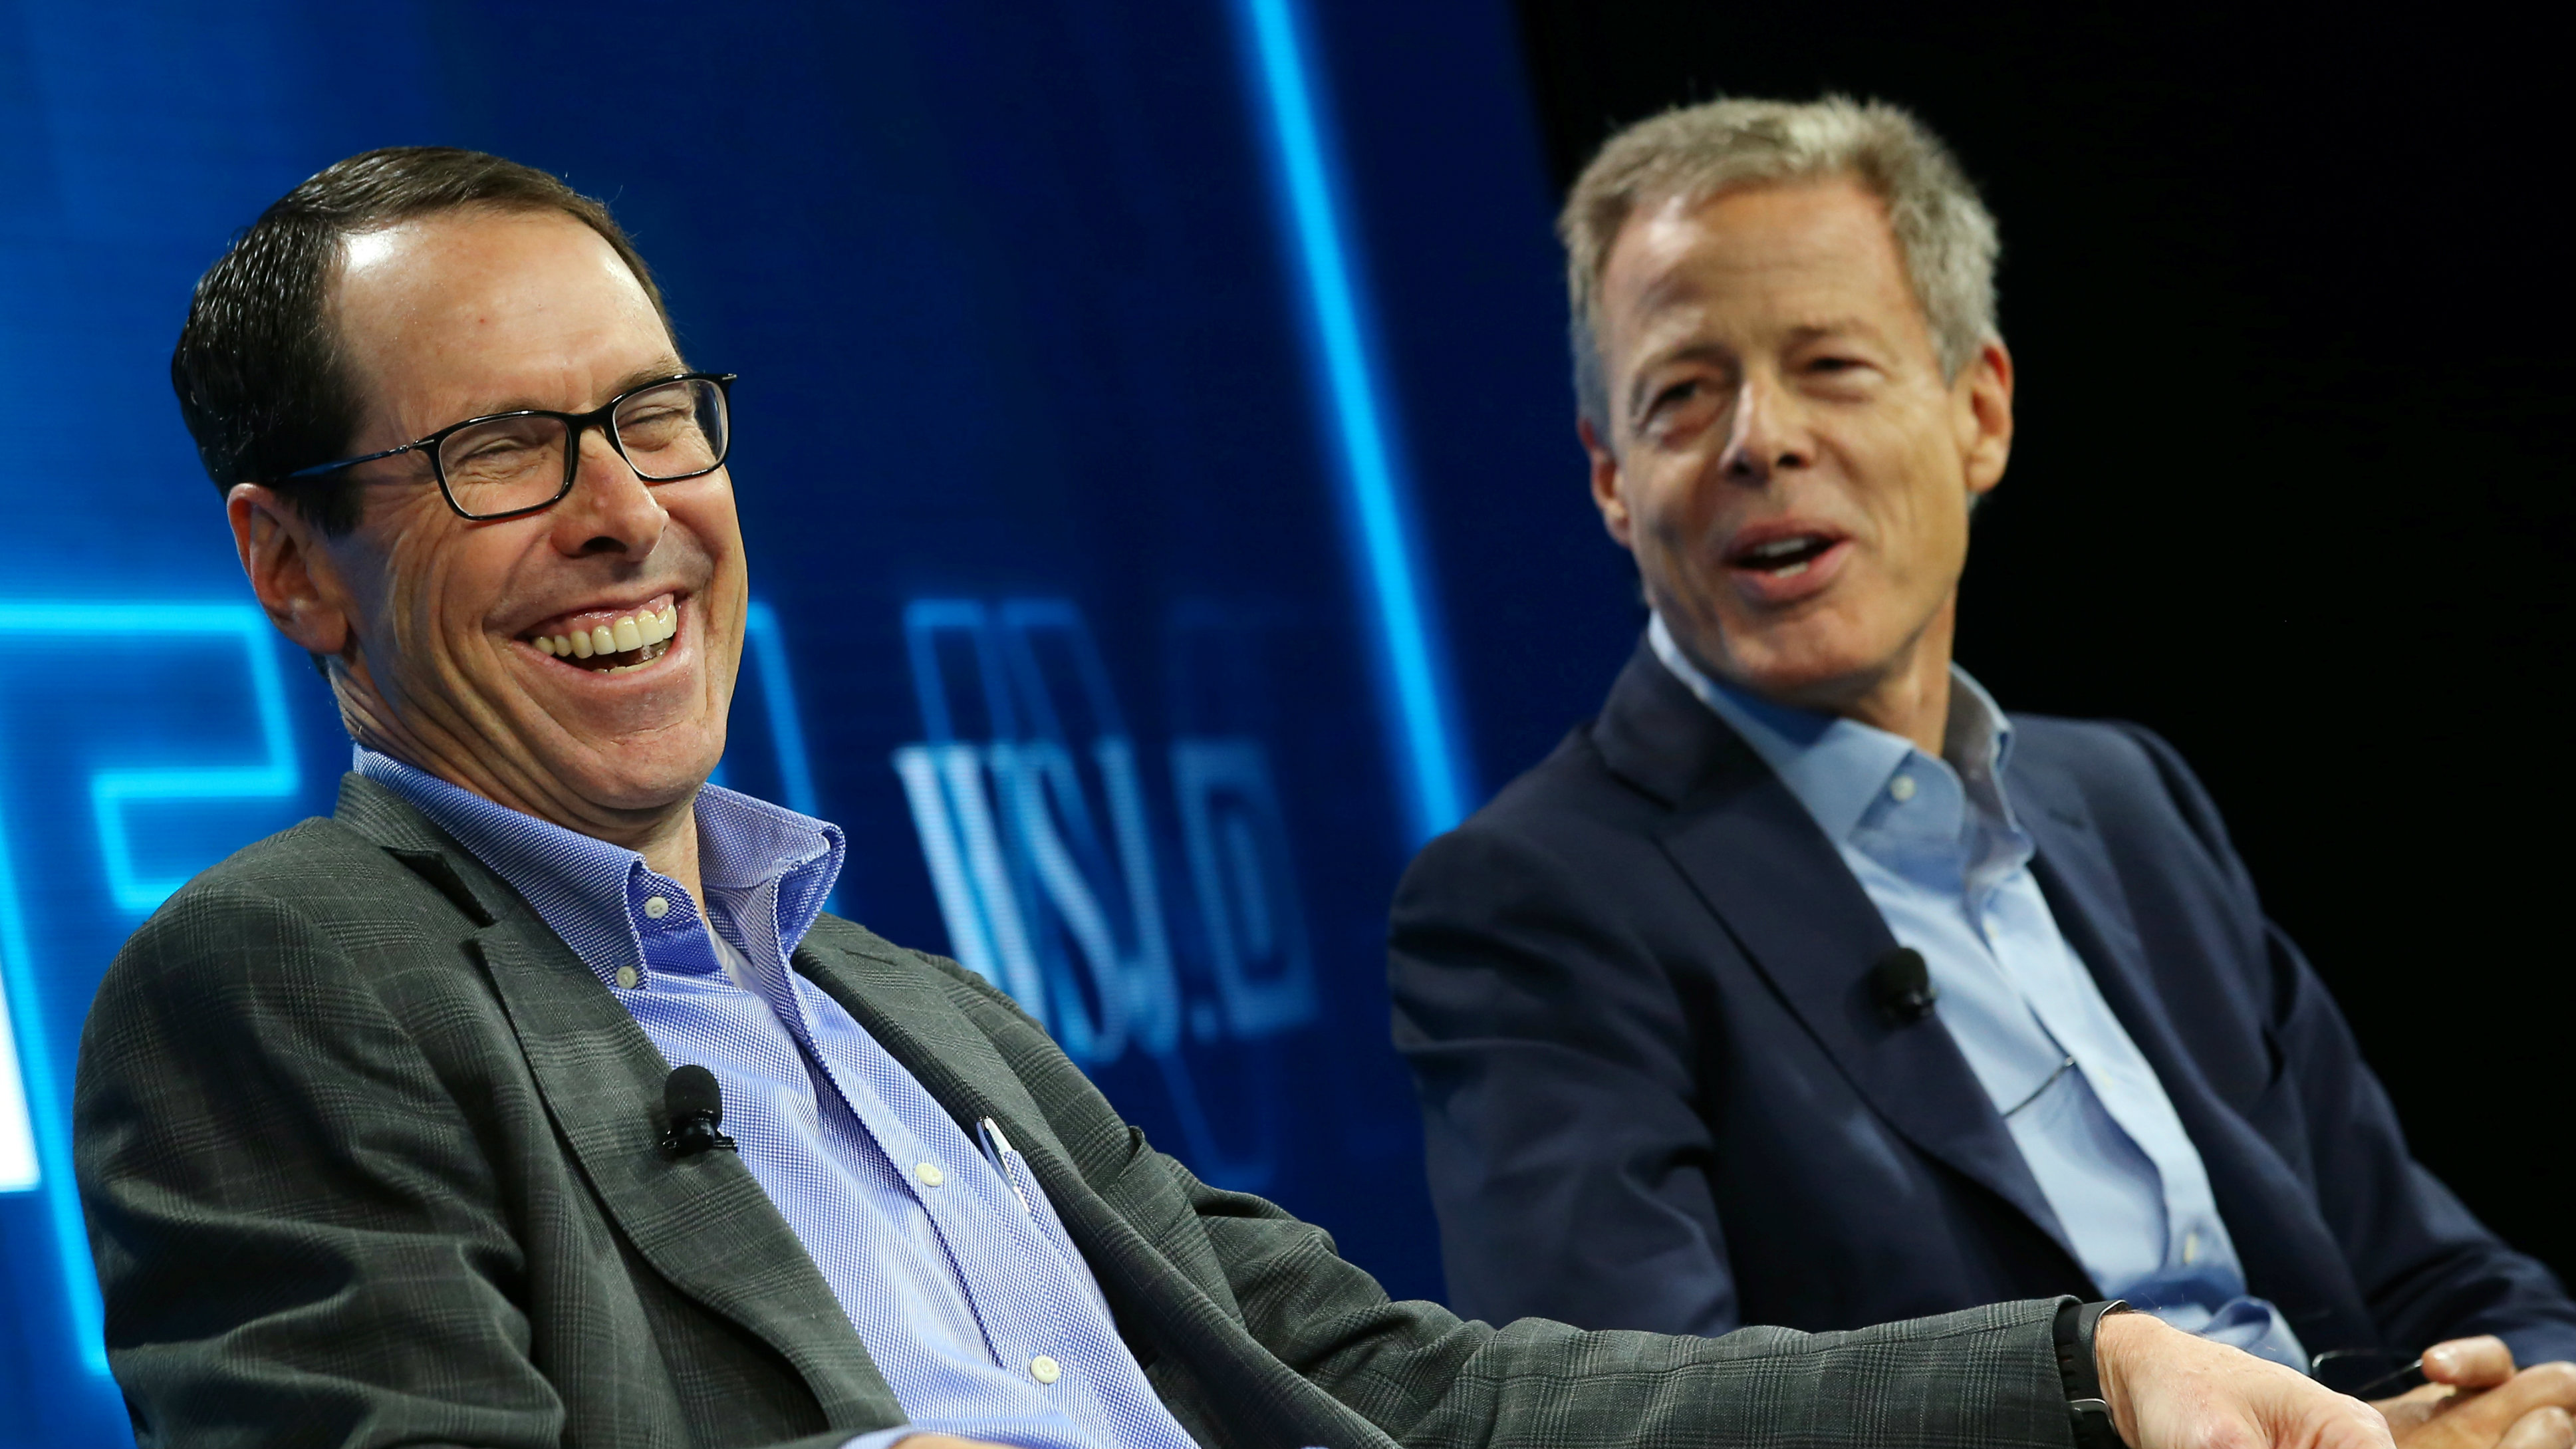 AT&T CEO Randall Stephenson shares a laugh with Time Warner Inc CEO Jeff Bewkes as they discuss their proposed merger at the WSJD Live conference in Laguna Beach, California, U.S., October 25, 2016. REUTERS/Mike Blake